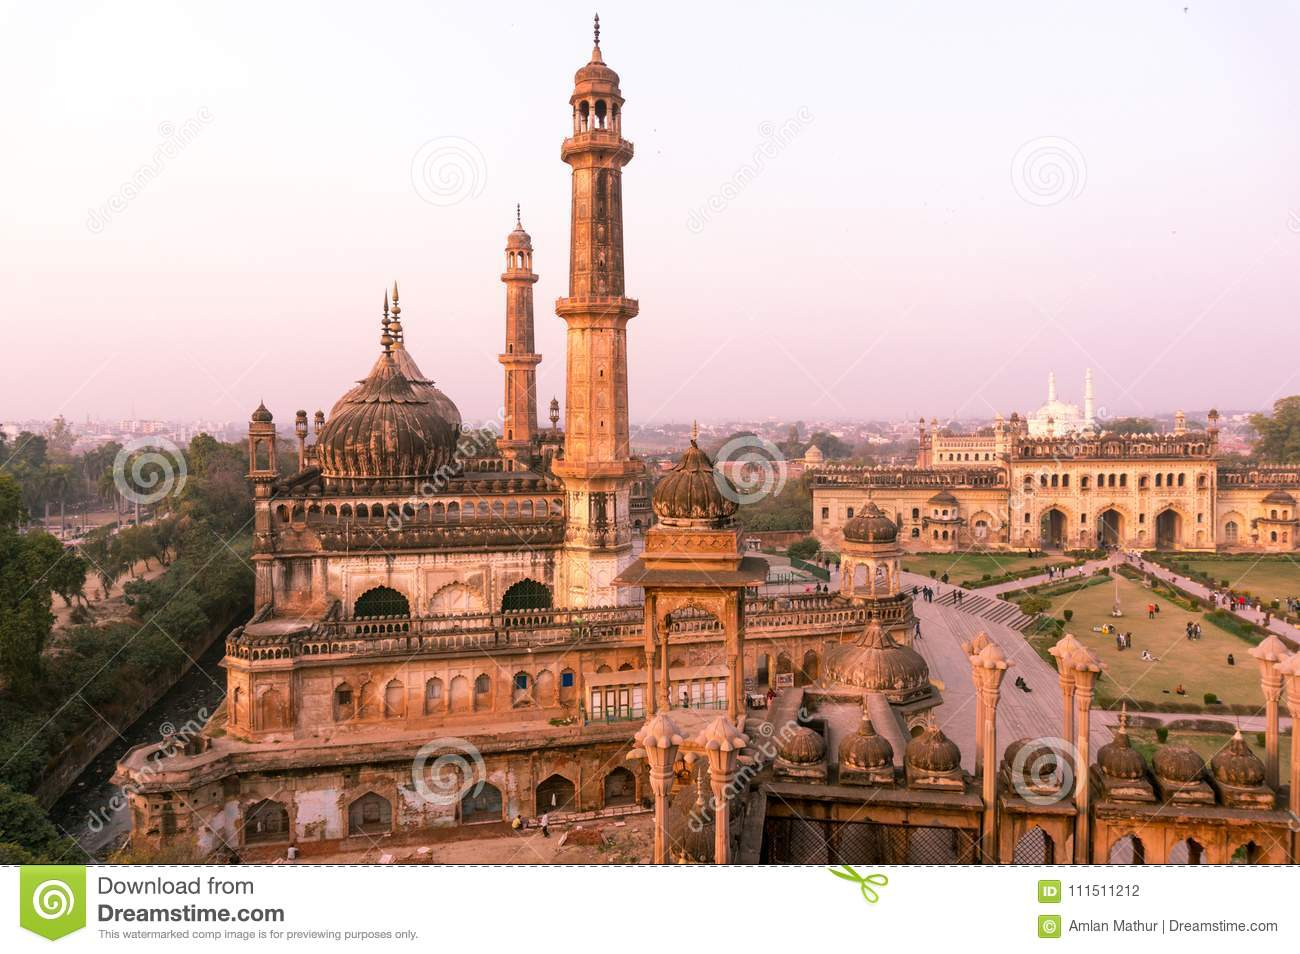 Domed roof and towers of Asfi mosque shot at sunset